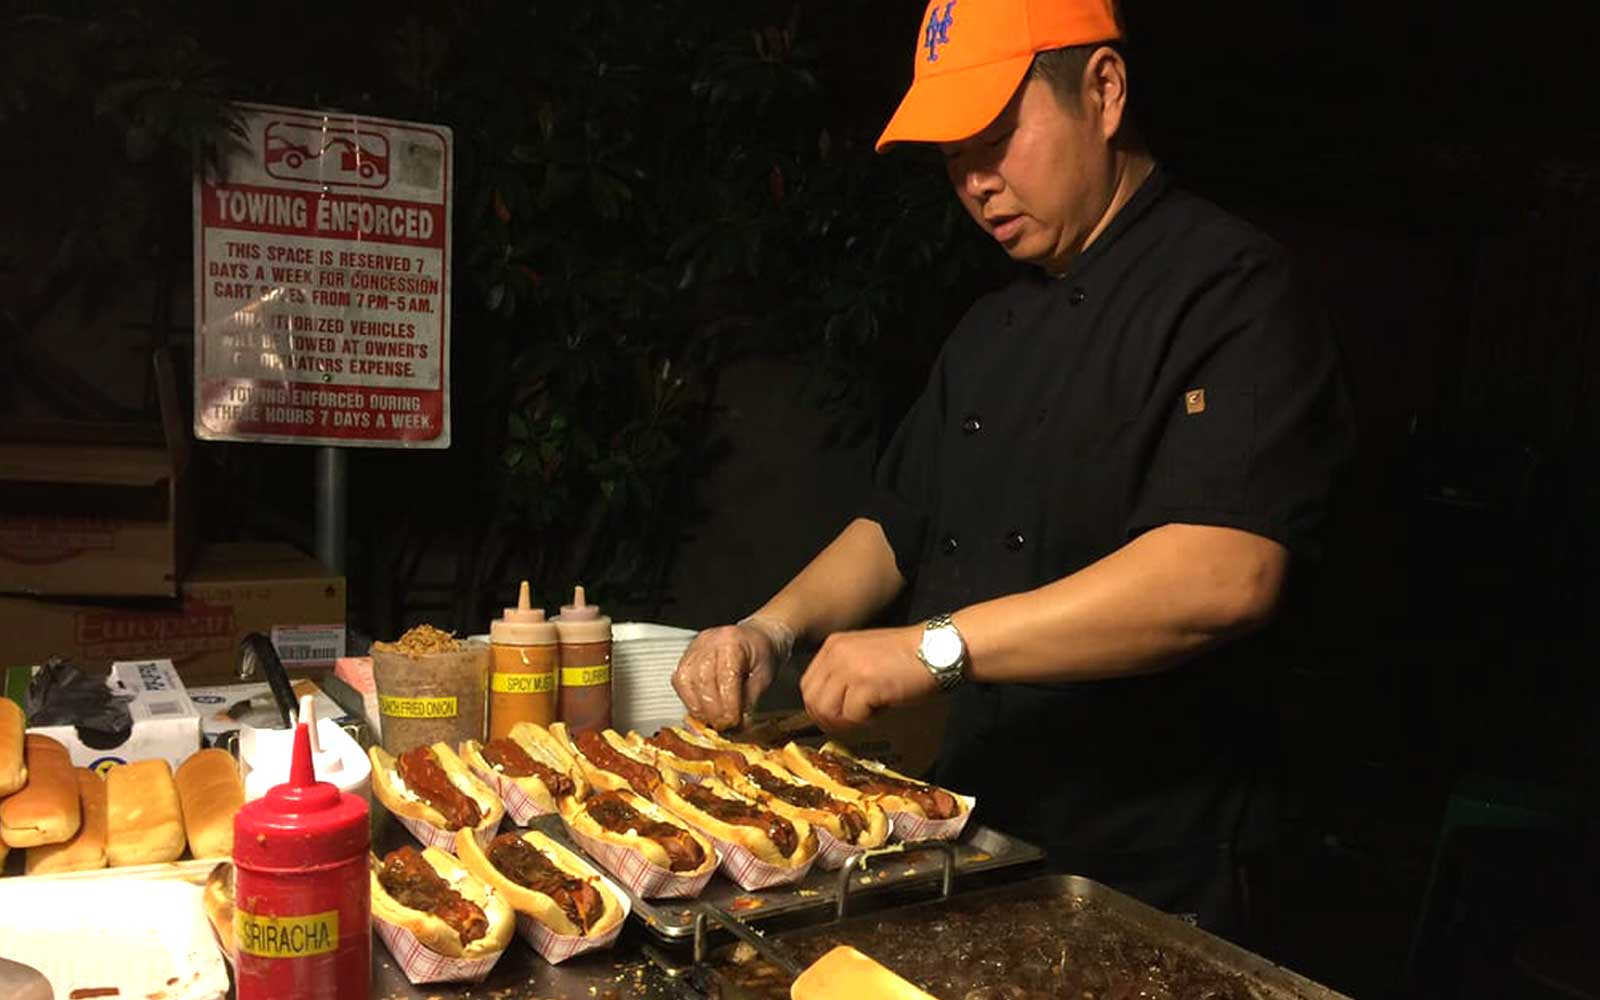 Yoyo's Hot Dog, Texas